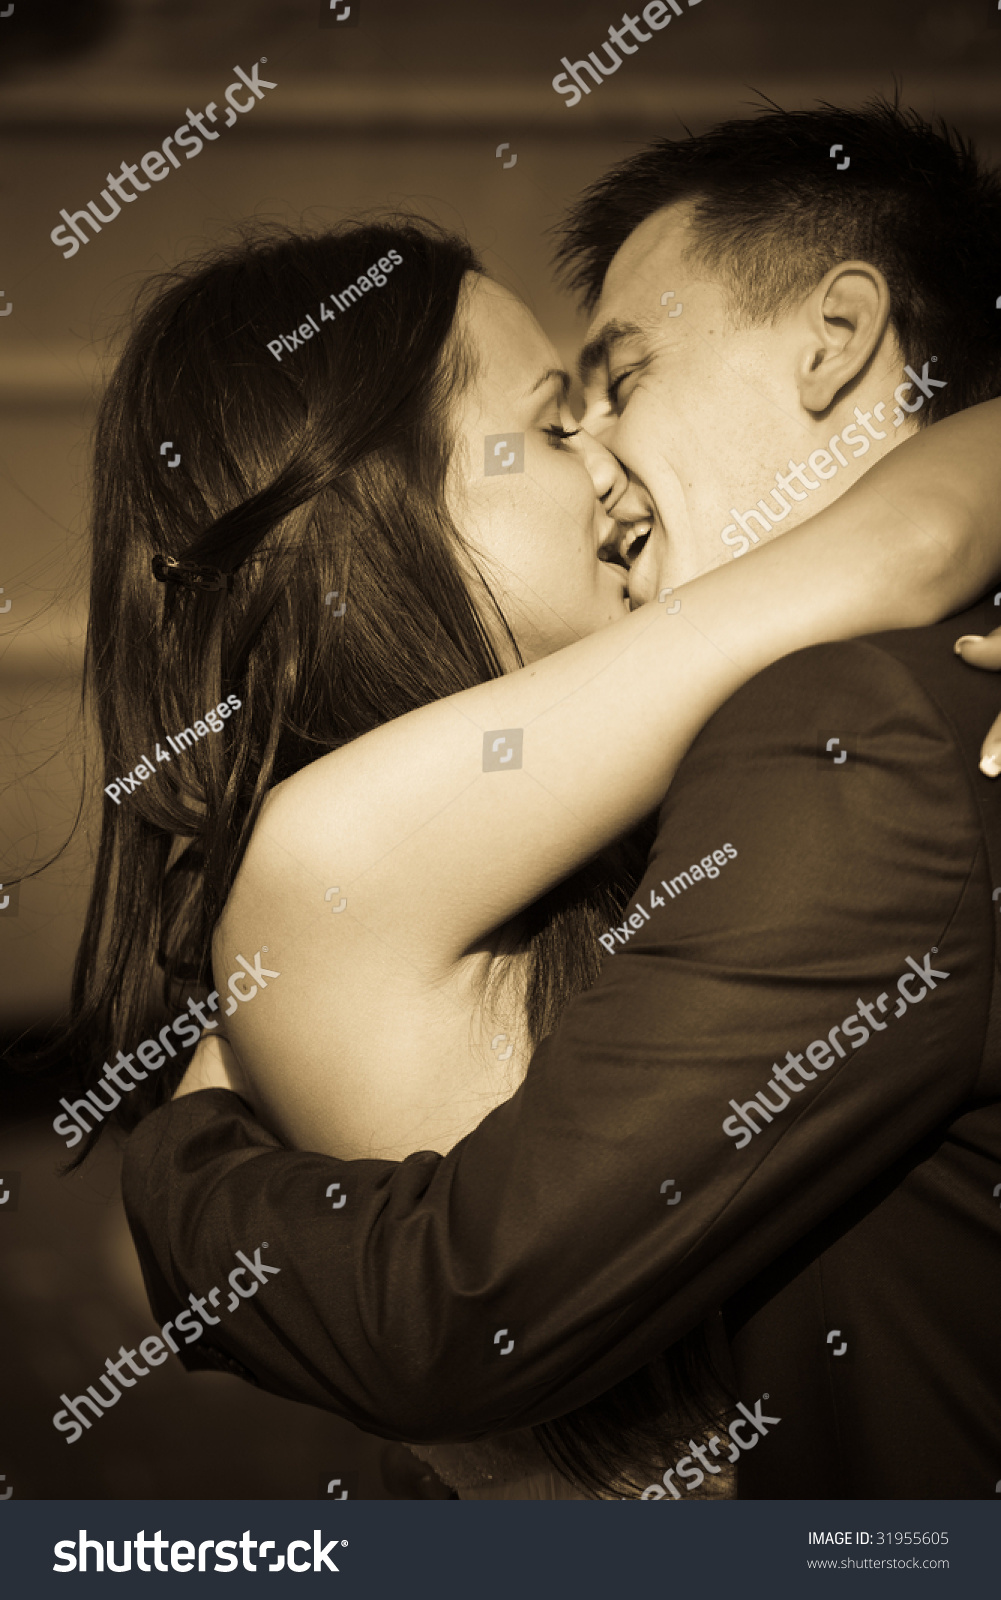 new husband wife kissing romantic hug stock photo & image (royalty